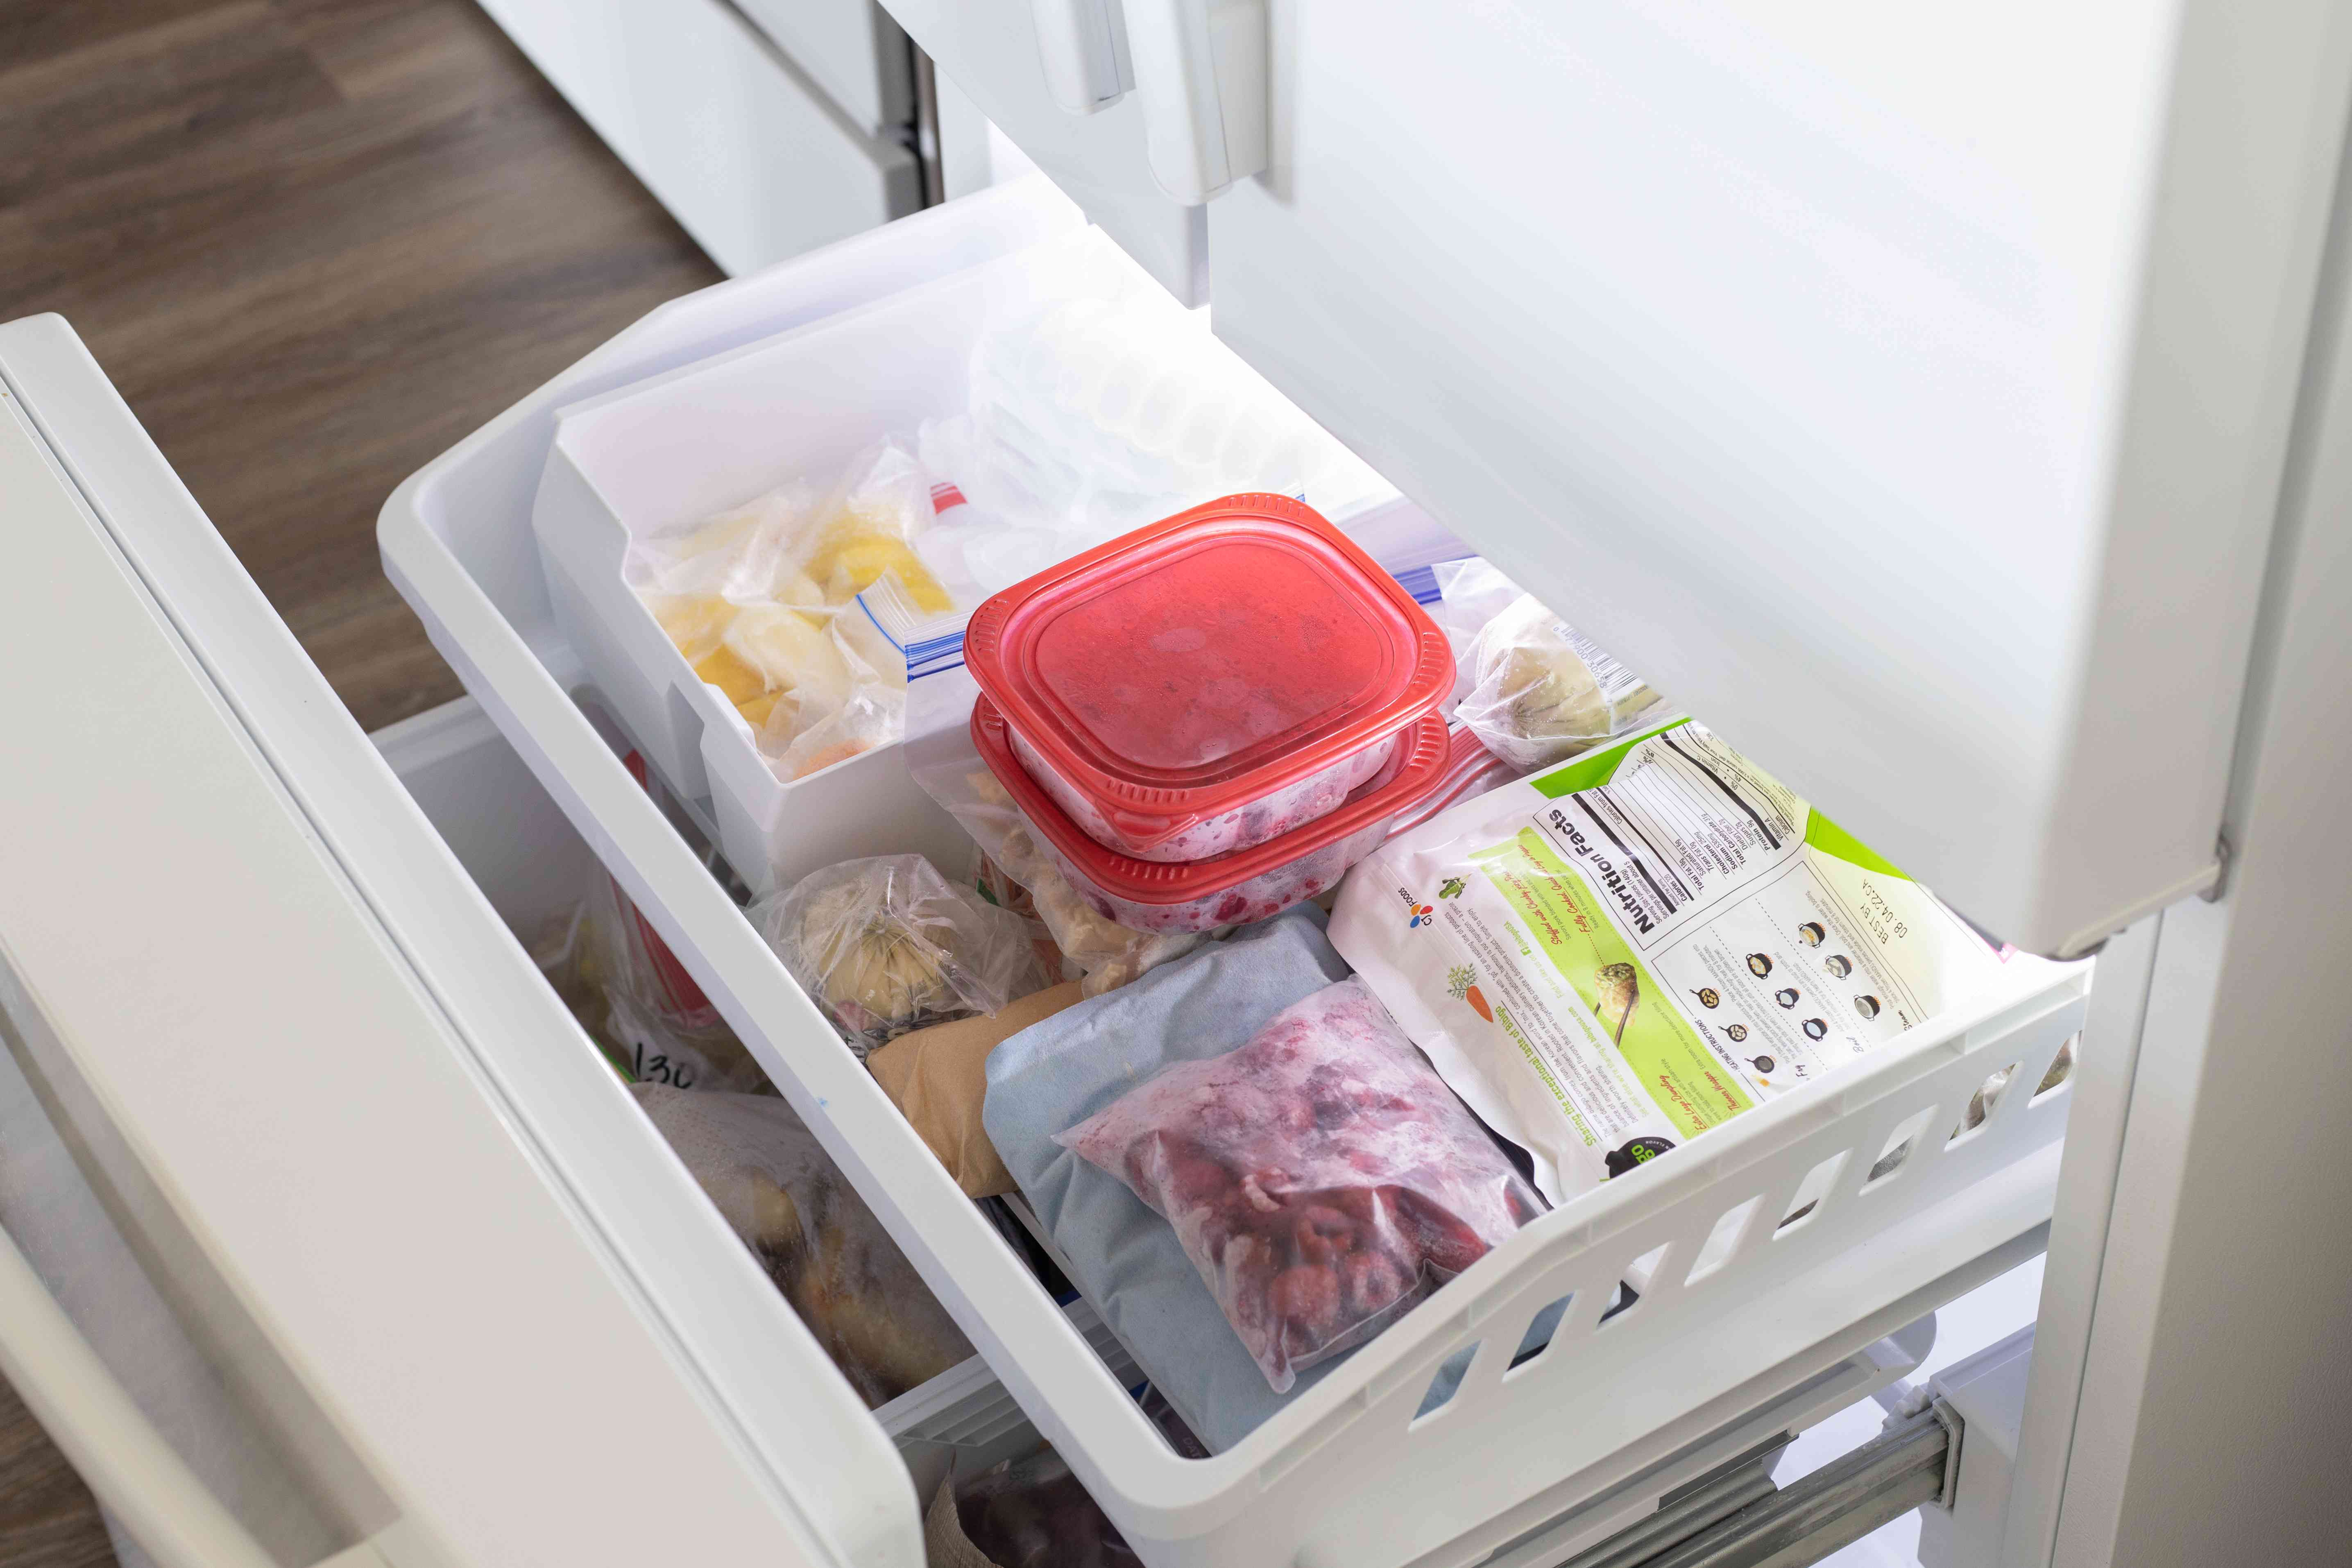 Freezer full of frozen foods and containers to lower electric bill